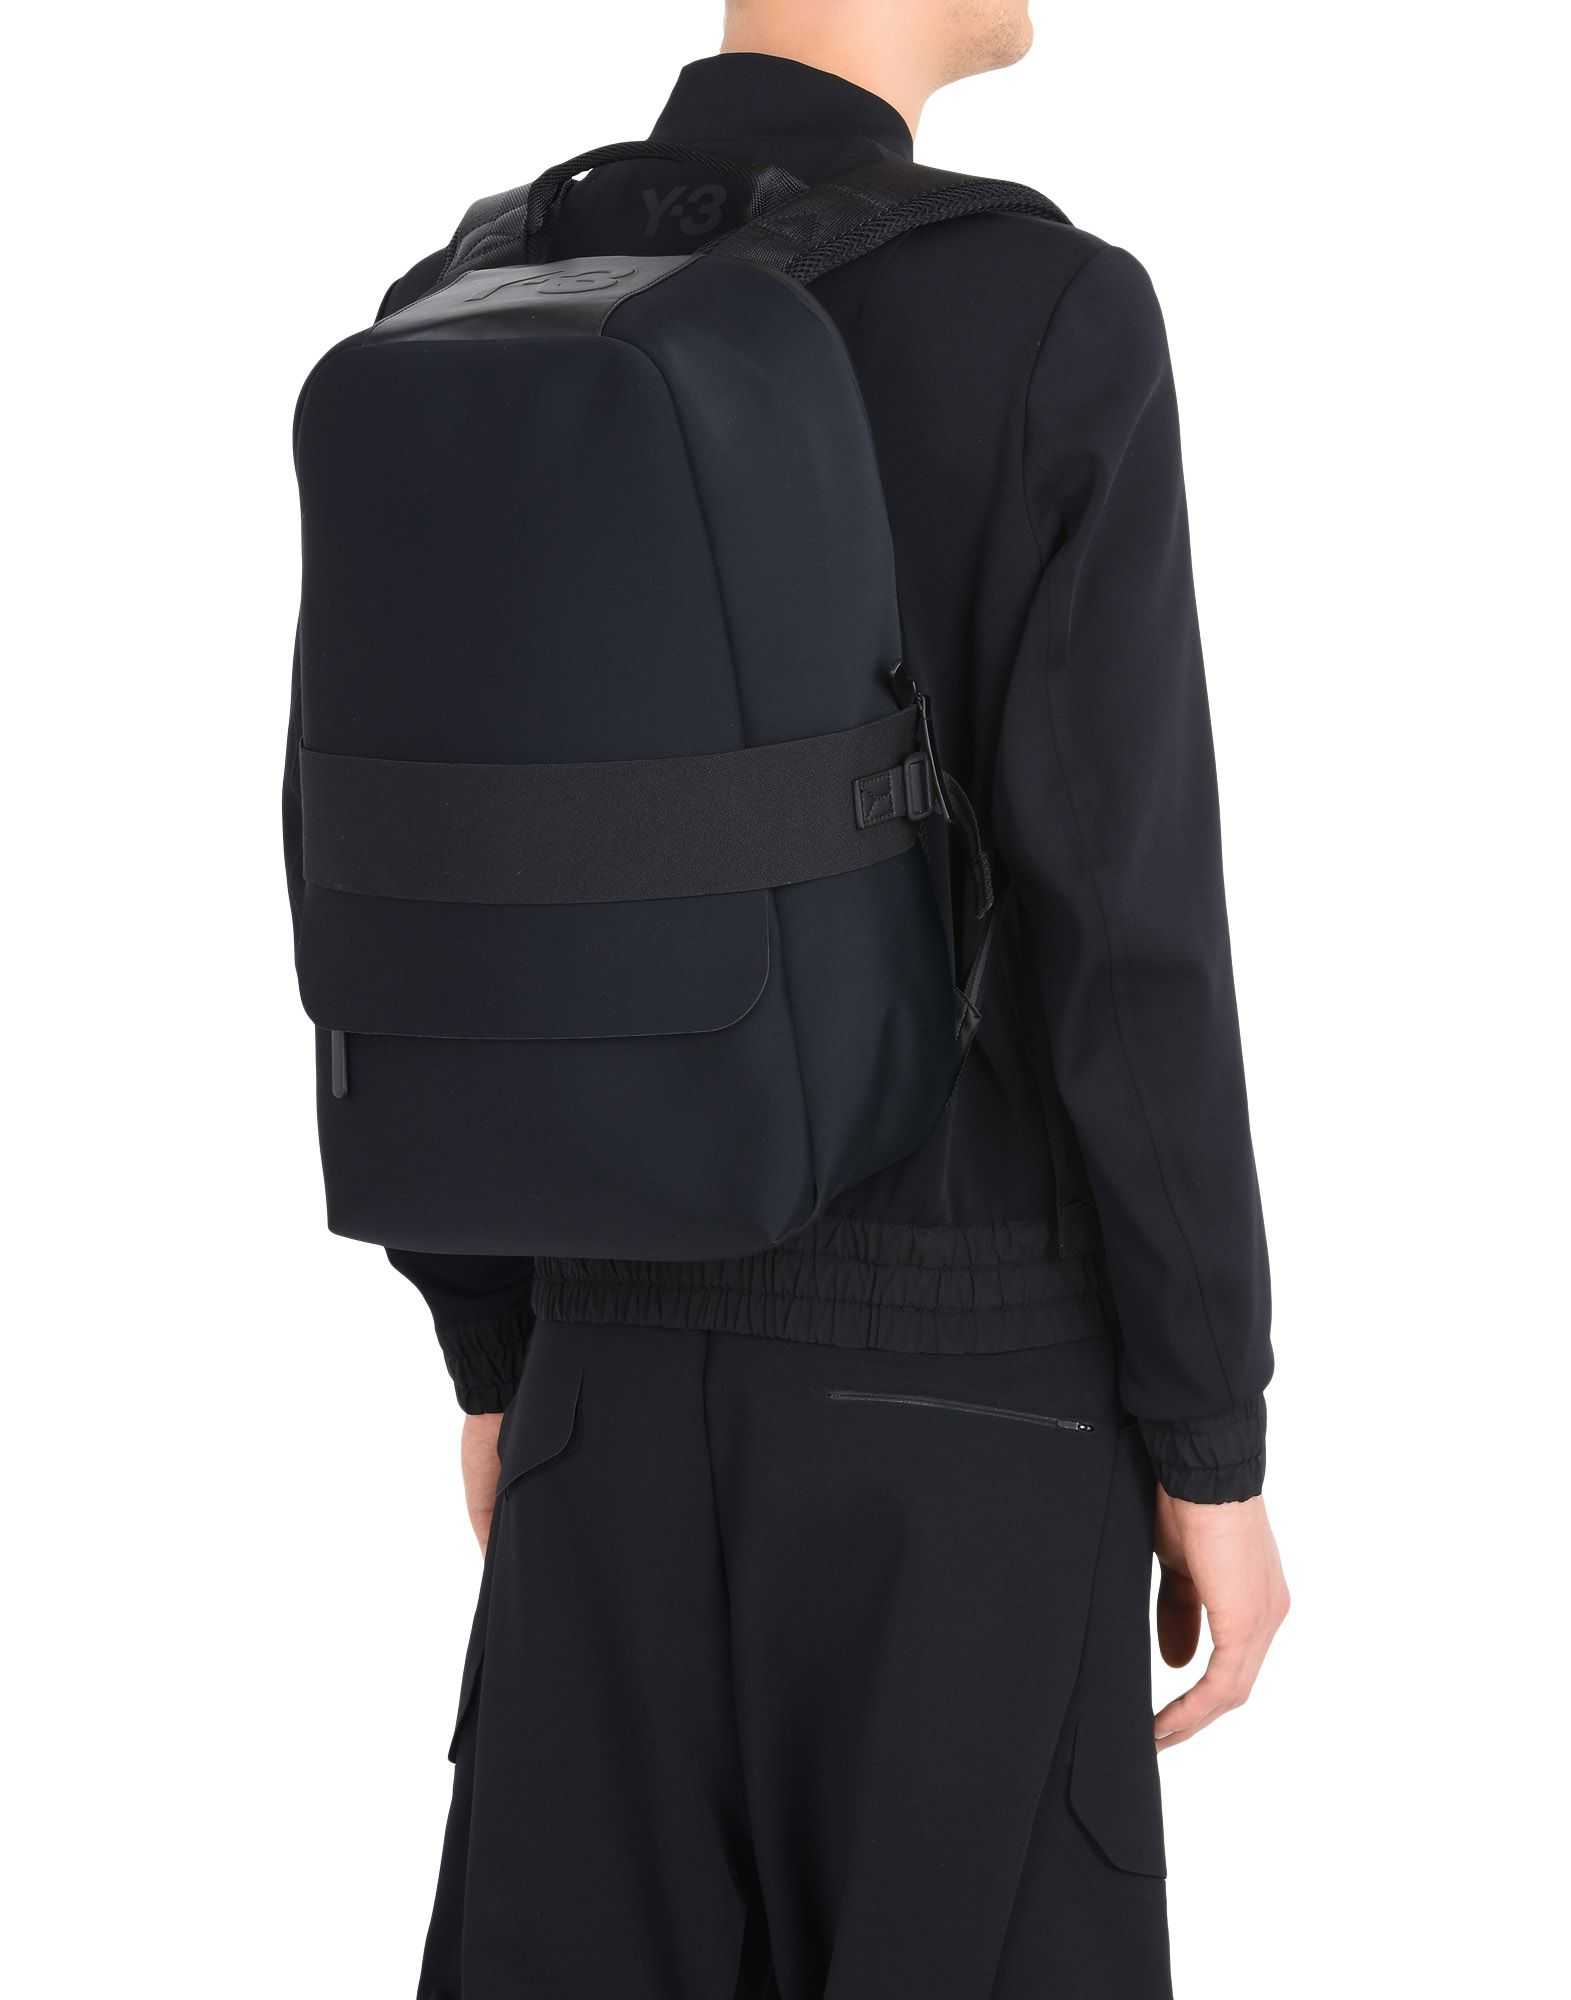 Y-3 Y-3 QASA BACKPACK Рюкзак E r